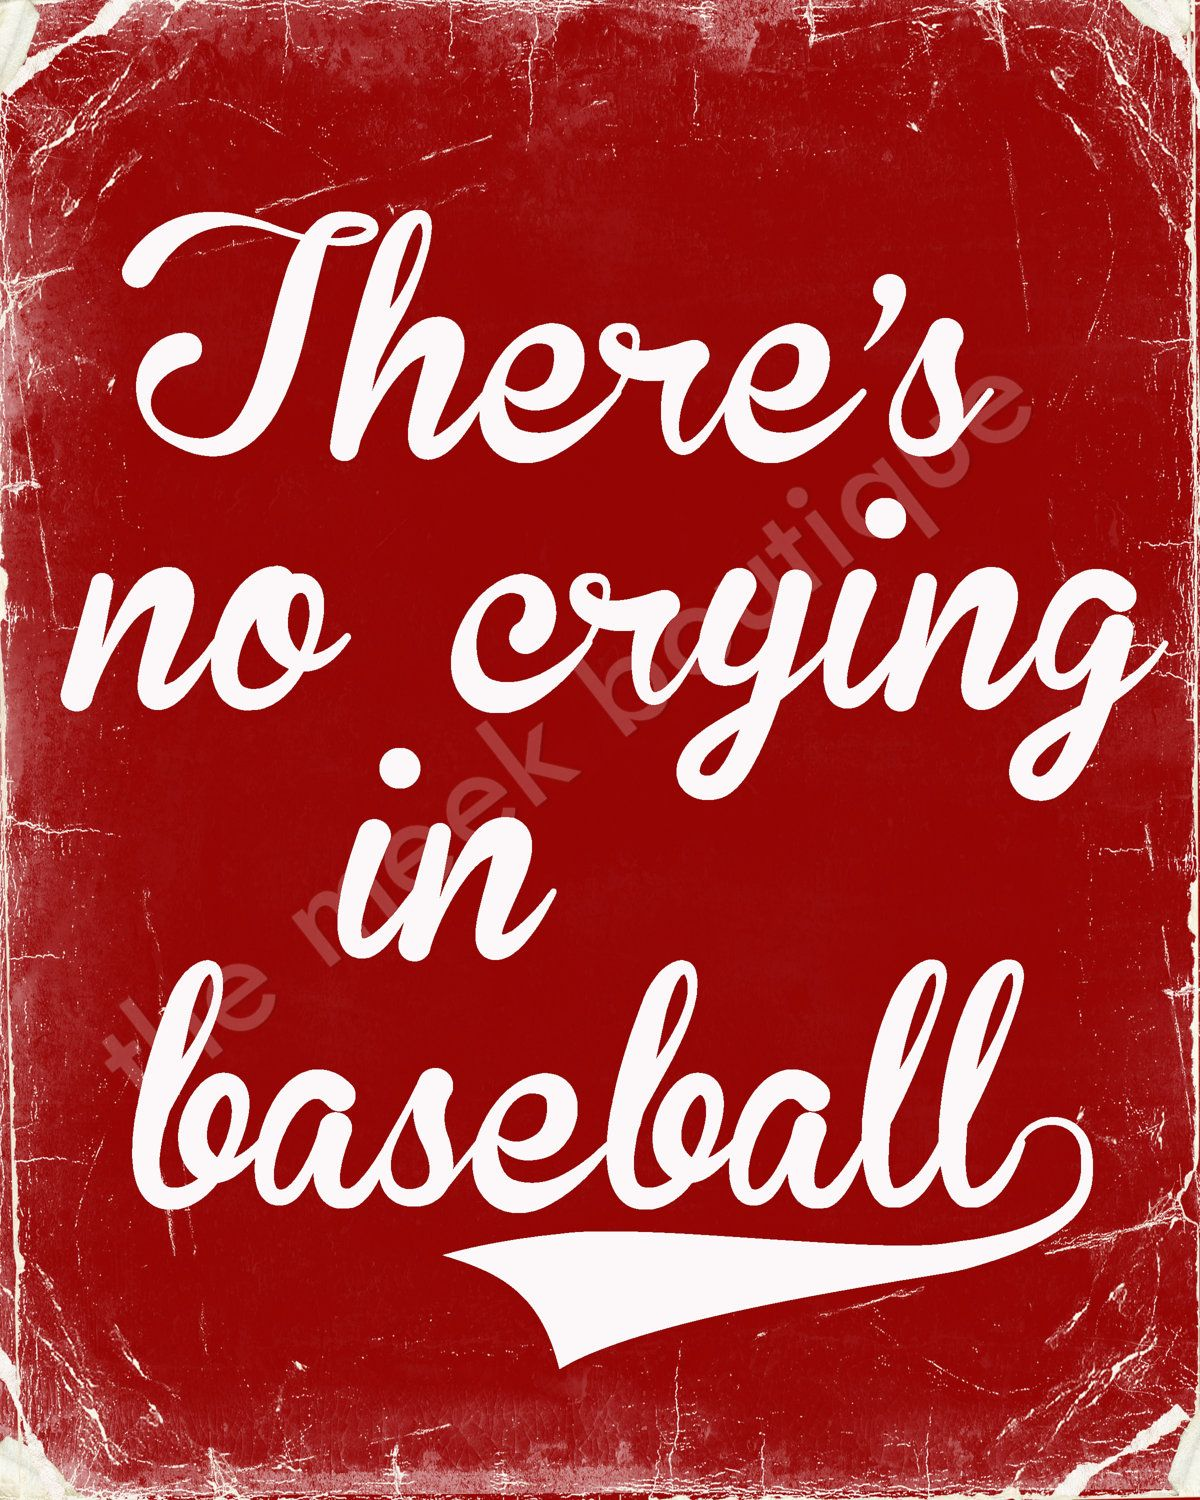 There's No Crying in Baseball - A League of Their Own!